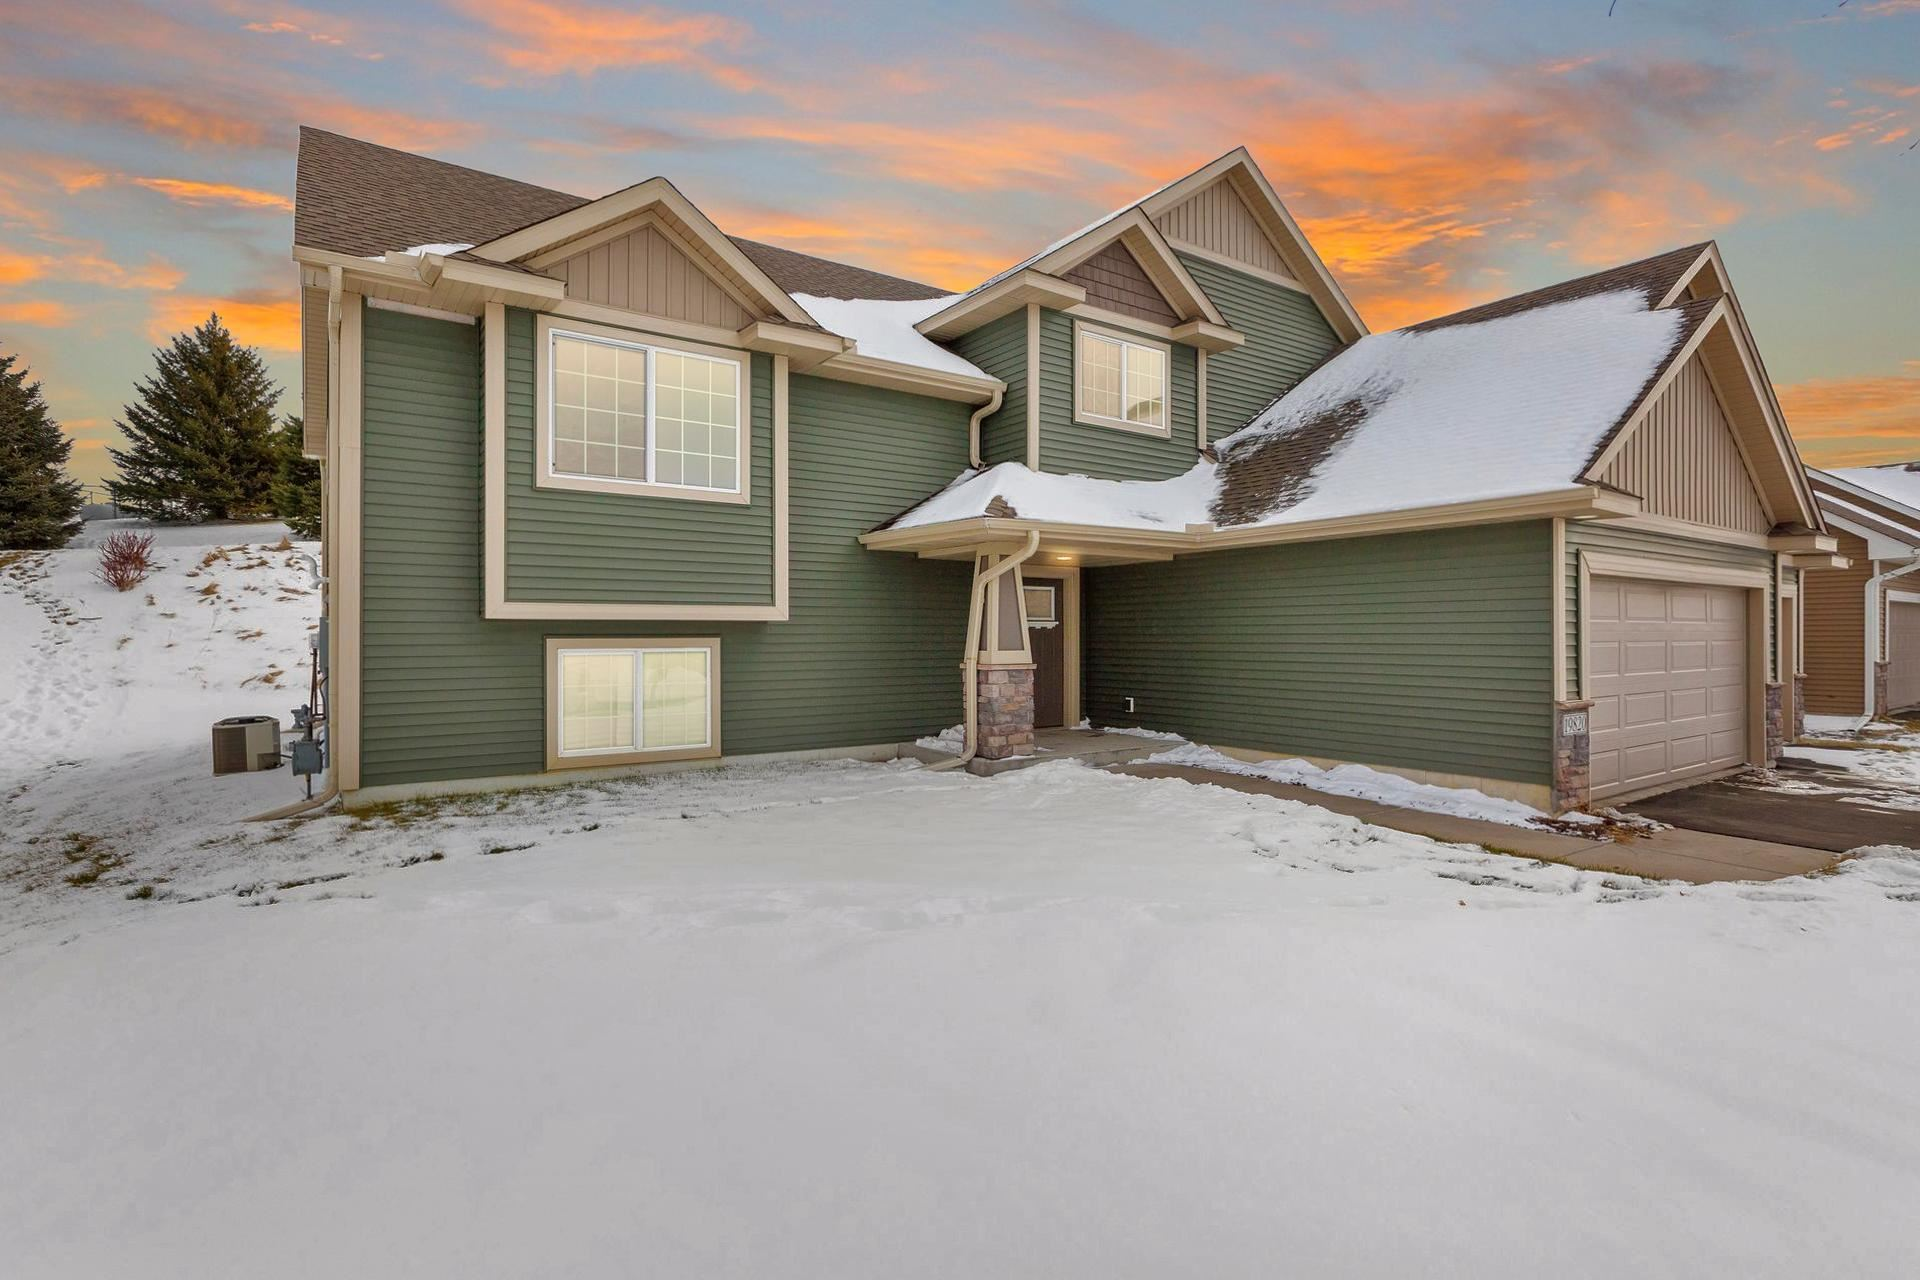 Photo of 19820 Itea Avenue, Lakeville, MN 55044 (MLS # 5695521)